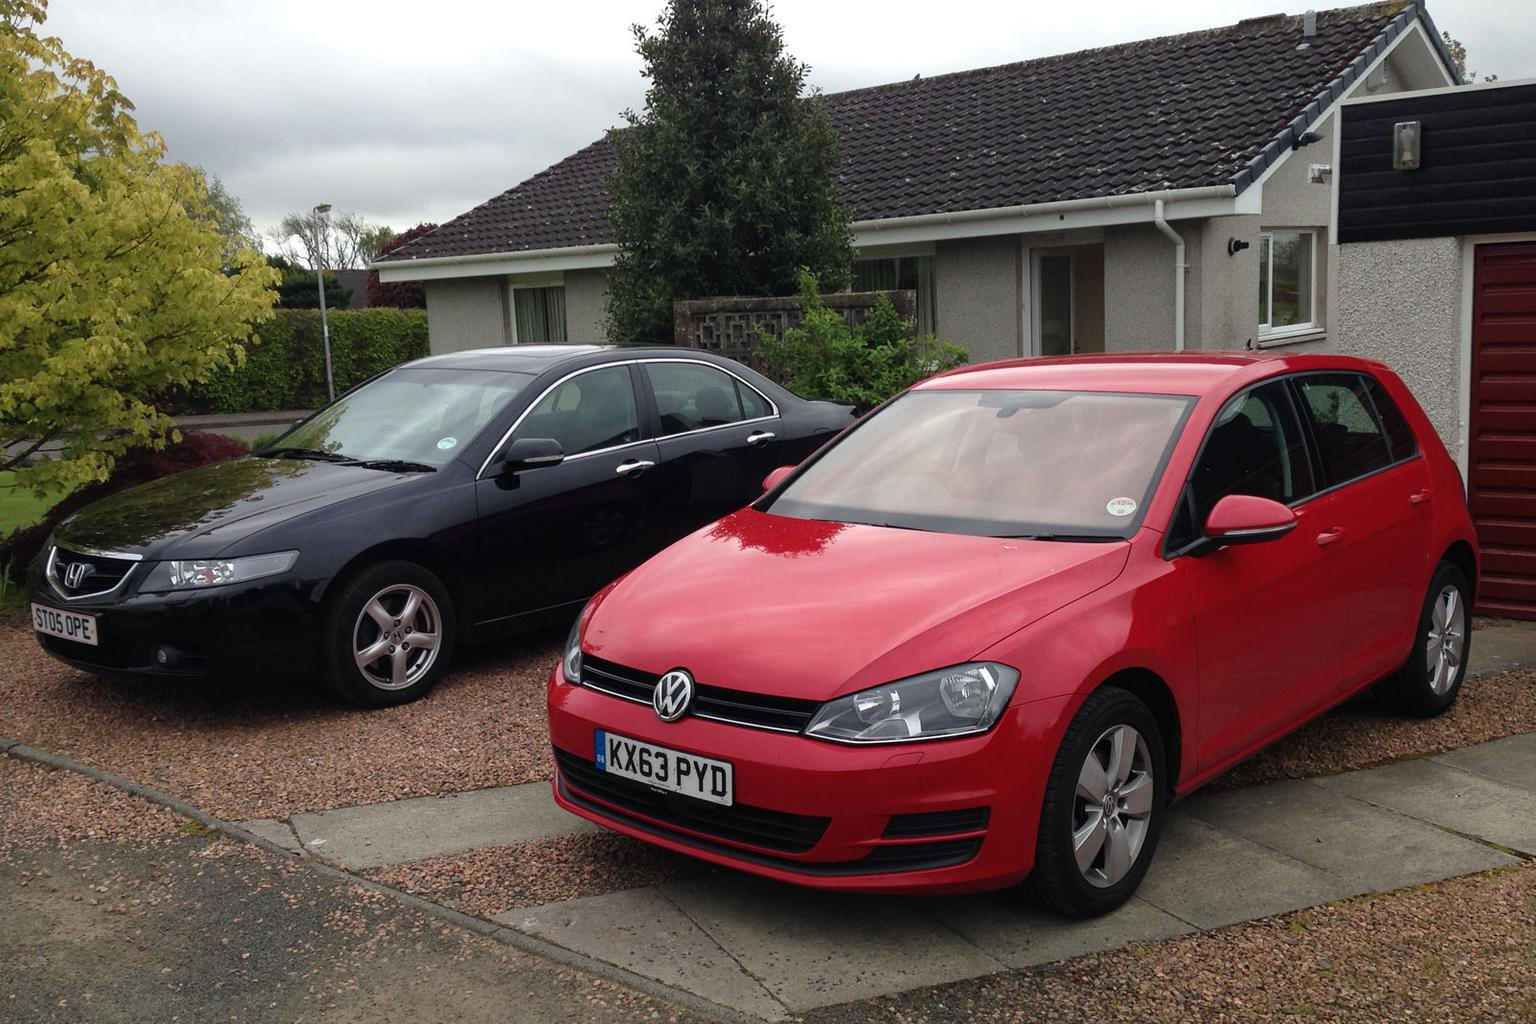 Our cars: Volkswagen Golf and Hyundai i10